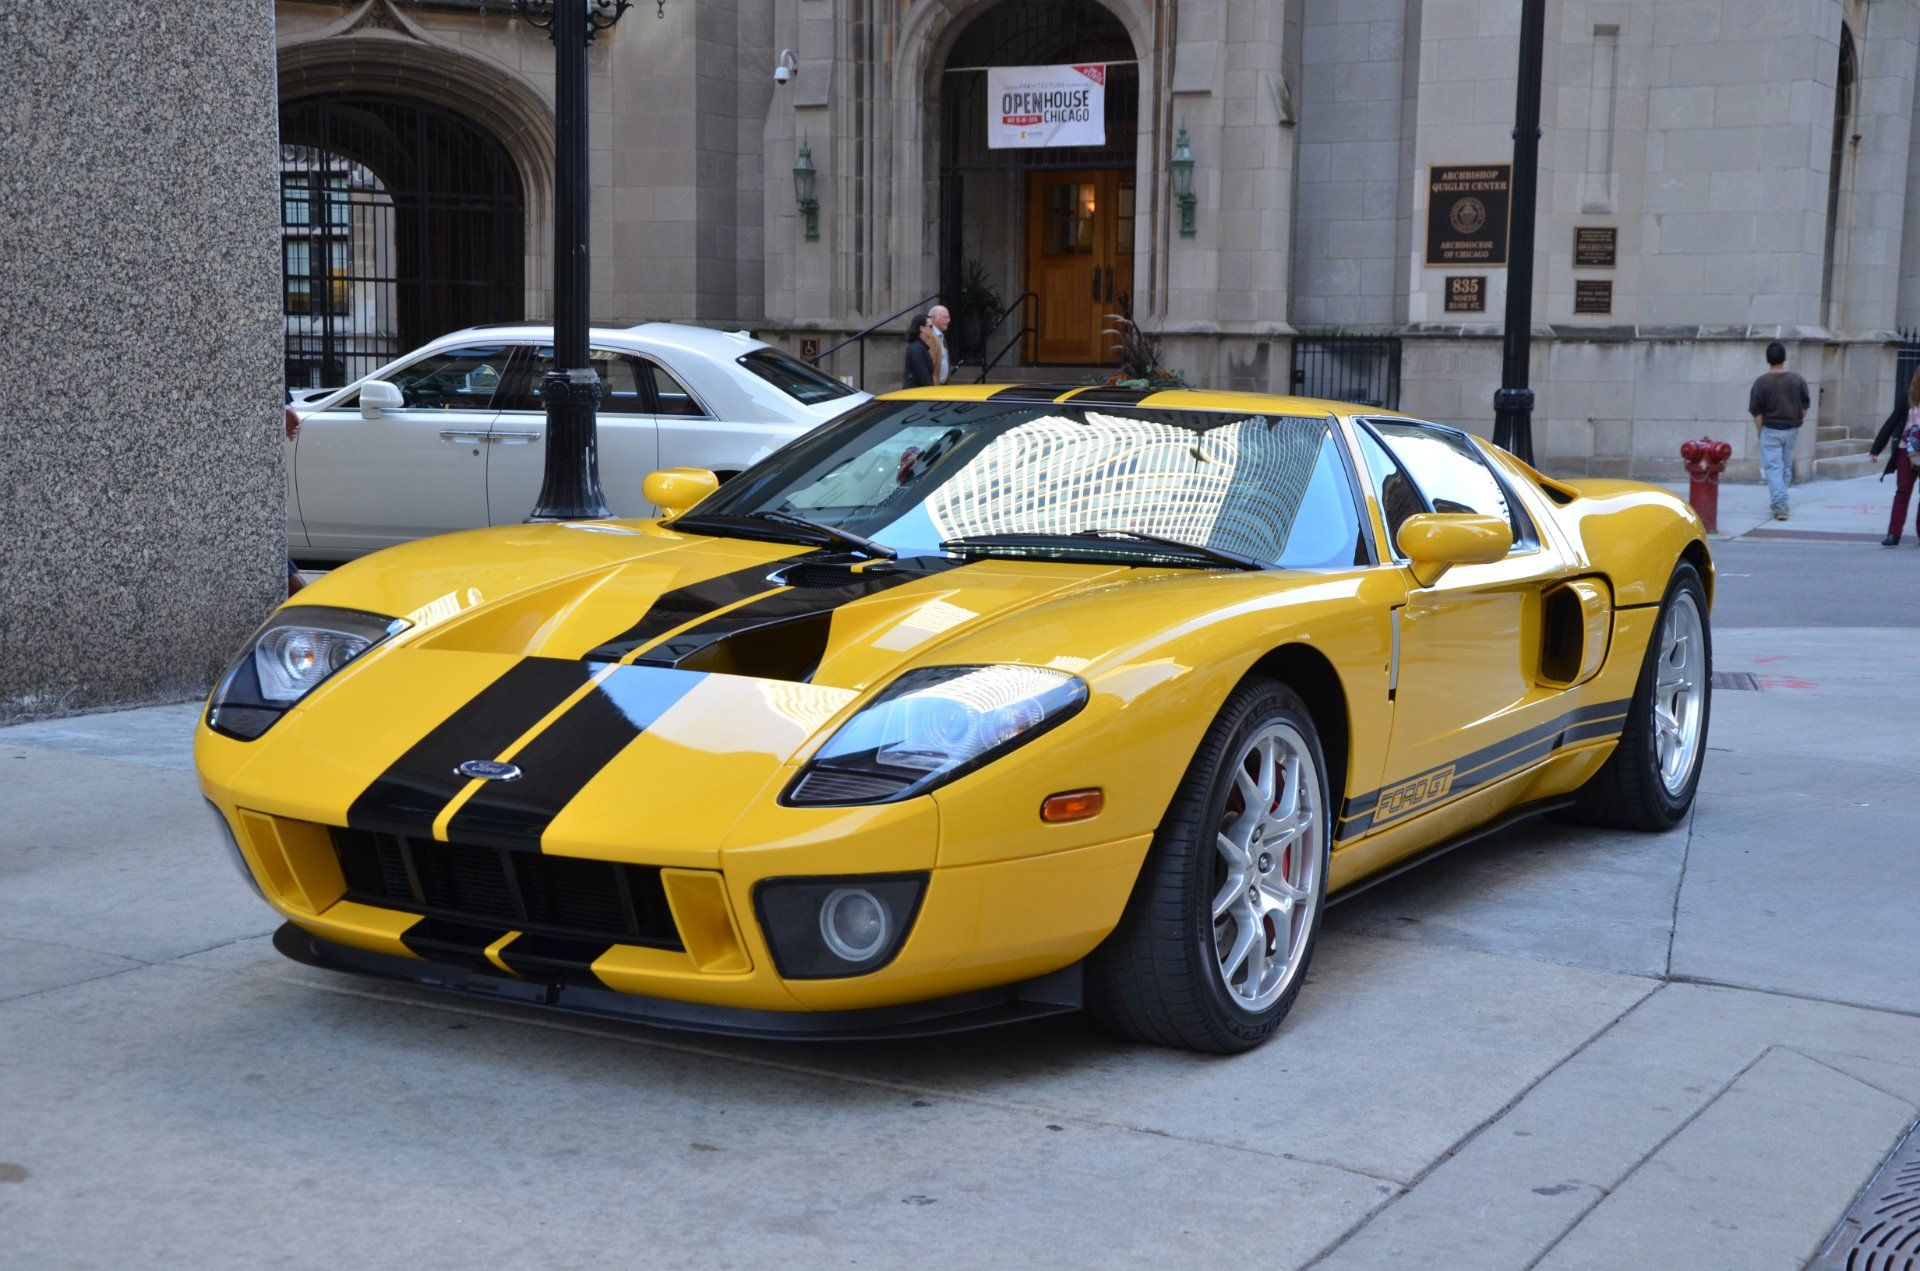 Used 2006 Ford Gt Chicago Il Ford Gt Ford Ford Gt40